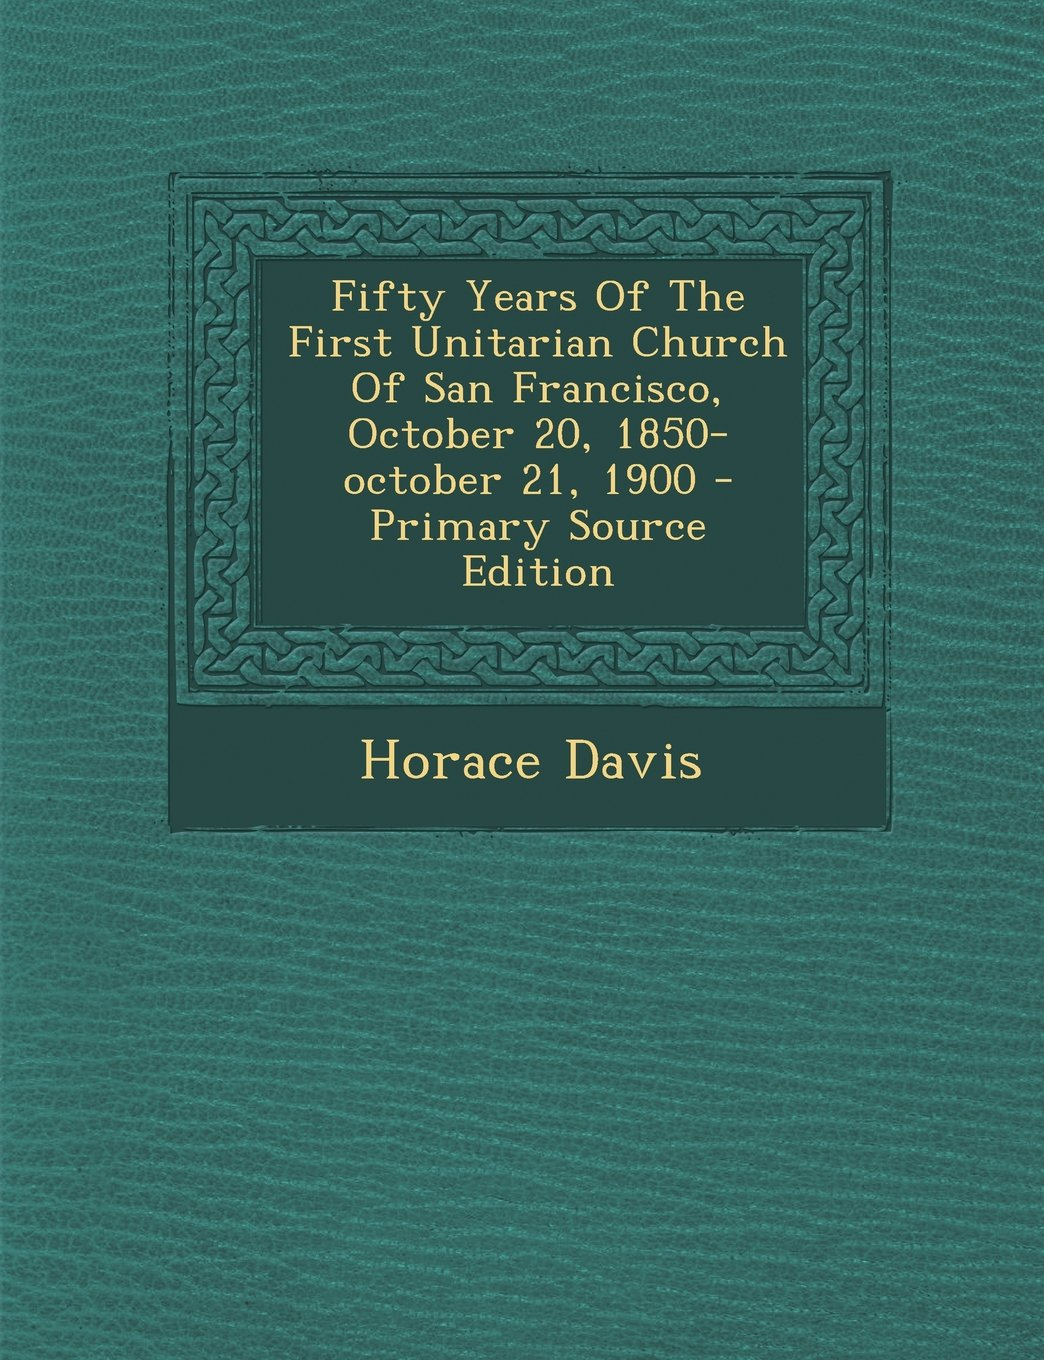 Fifty Years of the First Unitarian Church of San Francisco, October 20, 1850-October 21, 1900 - Primary Source Edition pdf epub